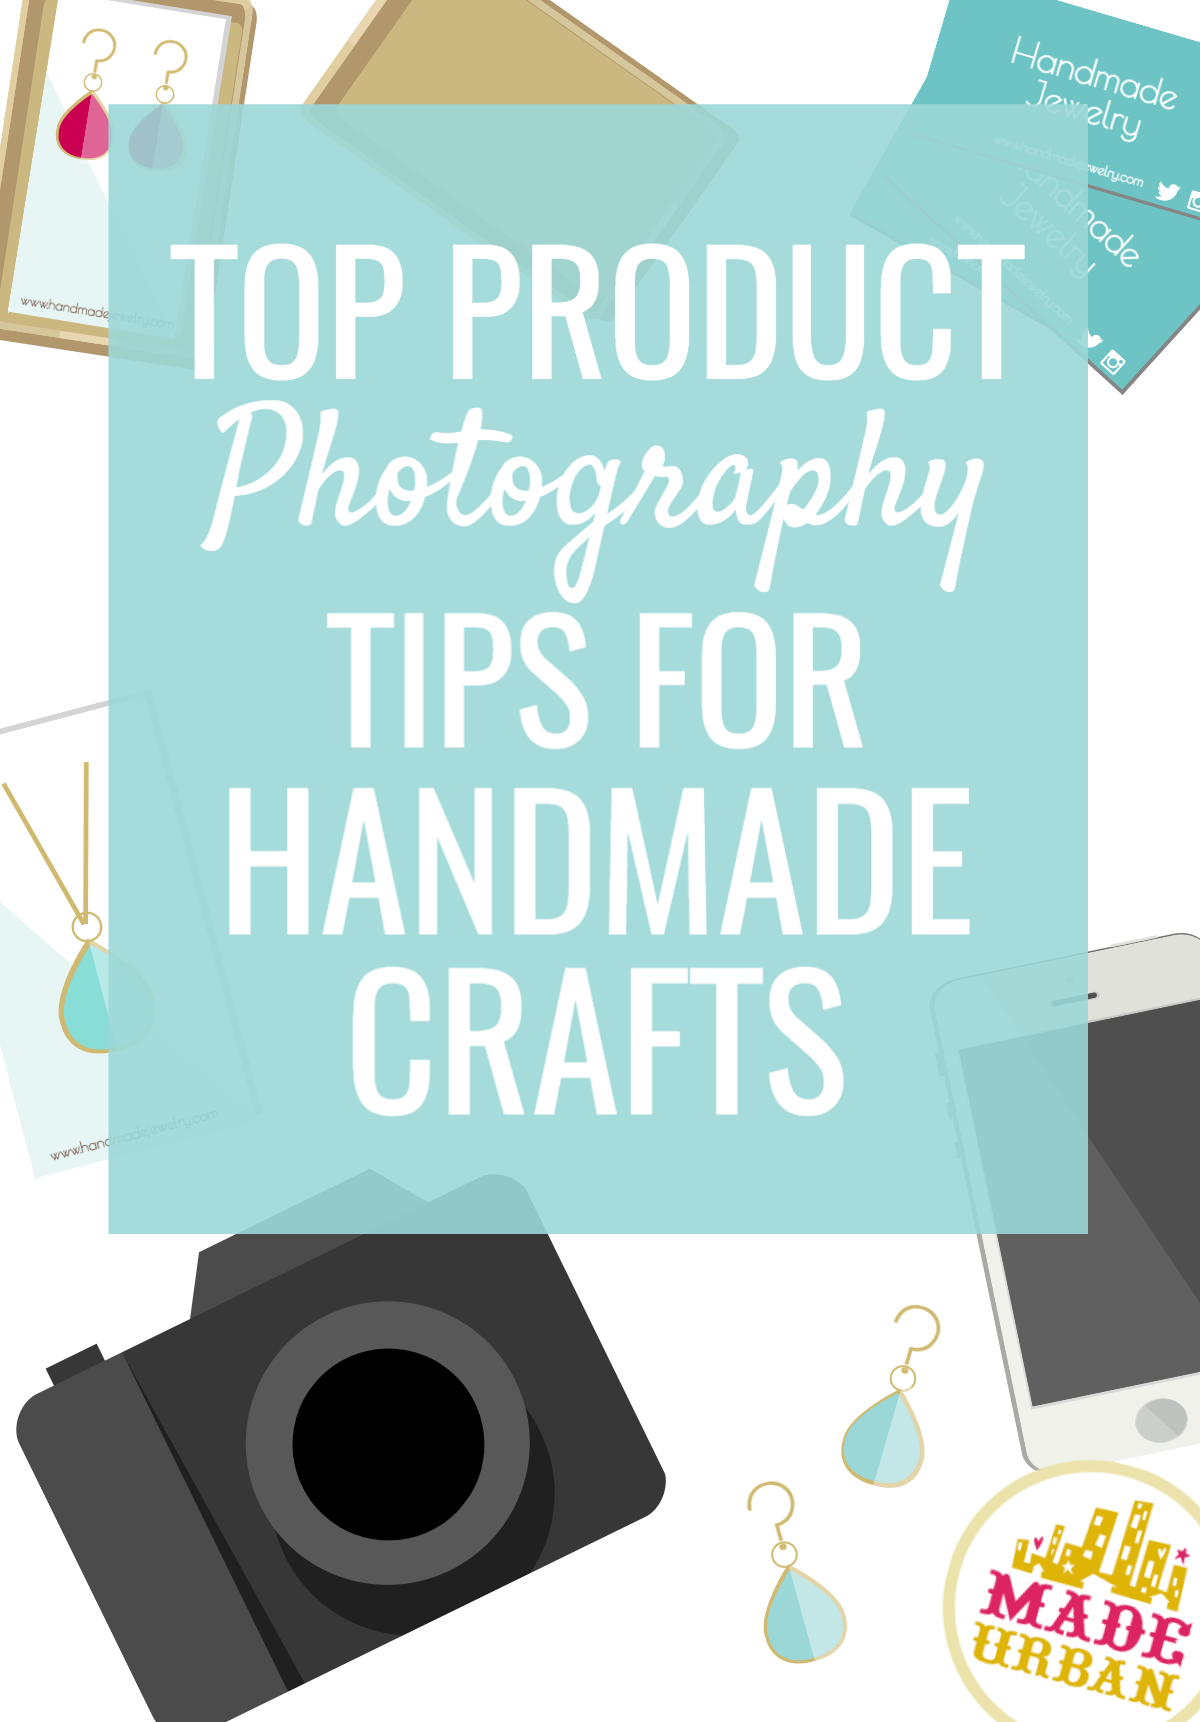 With advice from an Instagram expert featuring thousands of handmade businesses, we're sharing top photography tips to take the best photos of your crafts.